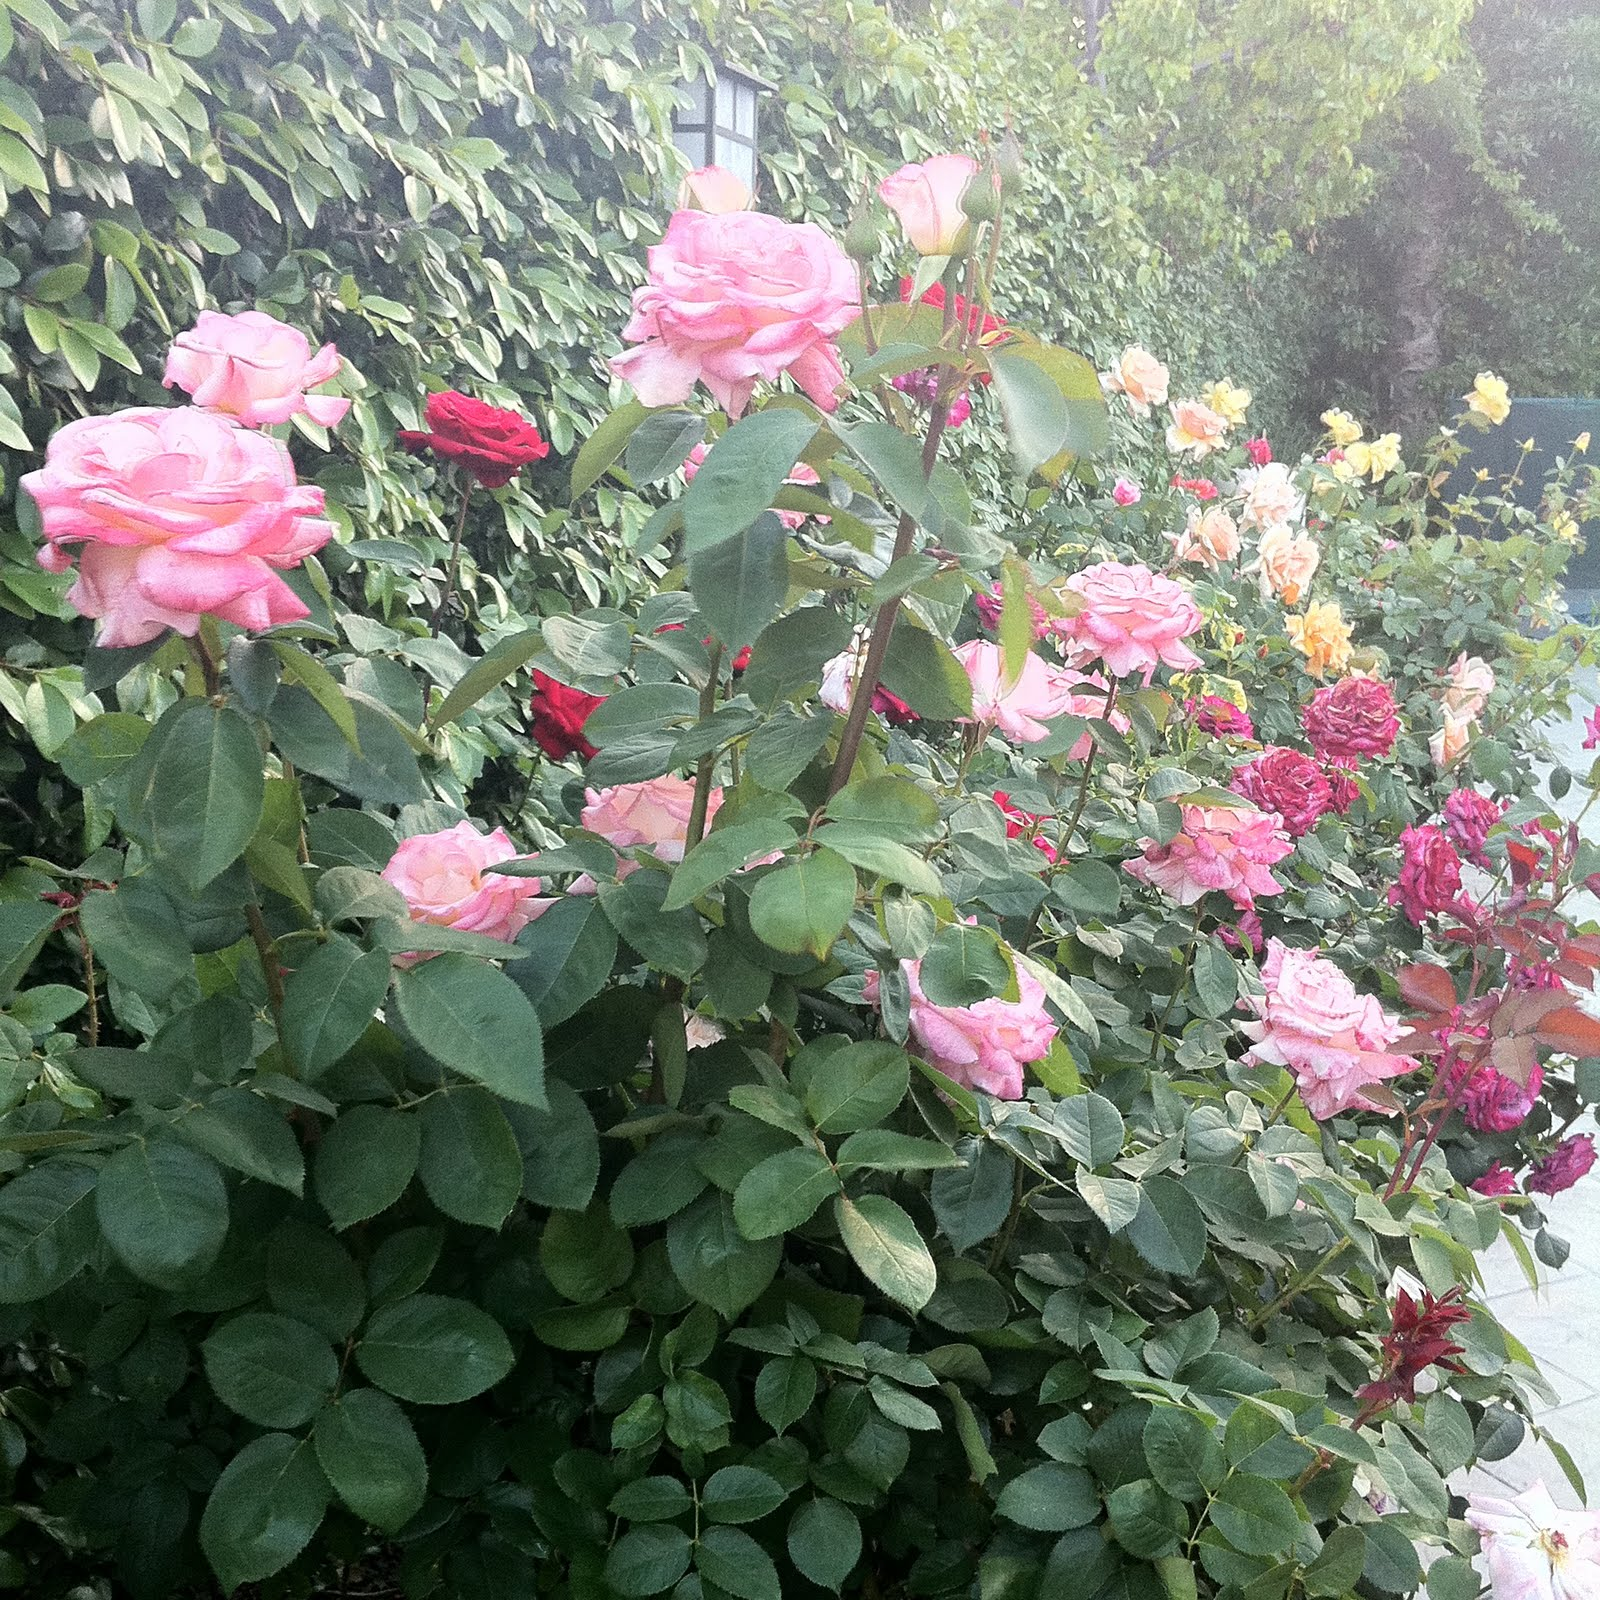 Backyard rose garden - My Rose Garden